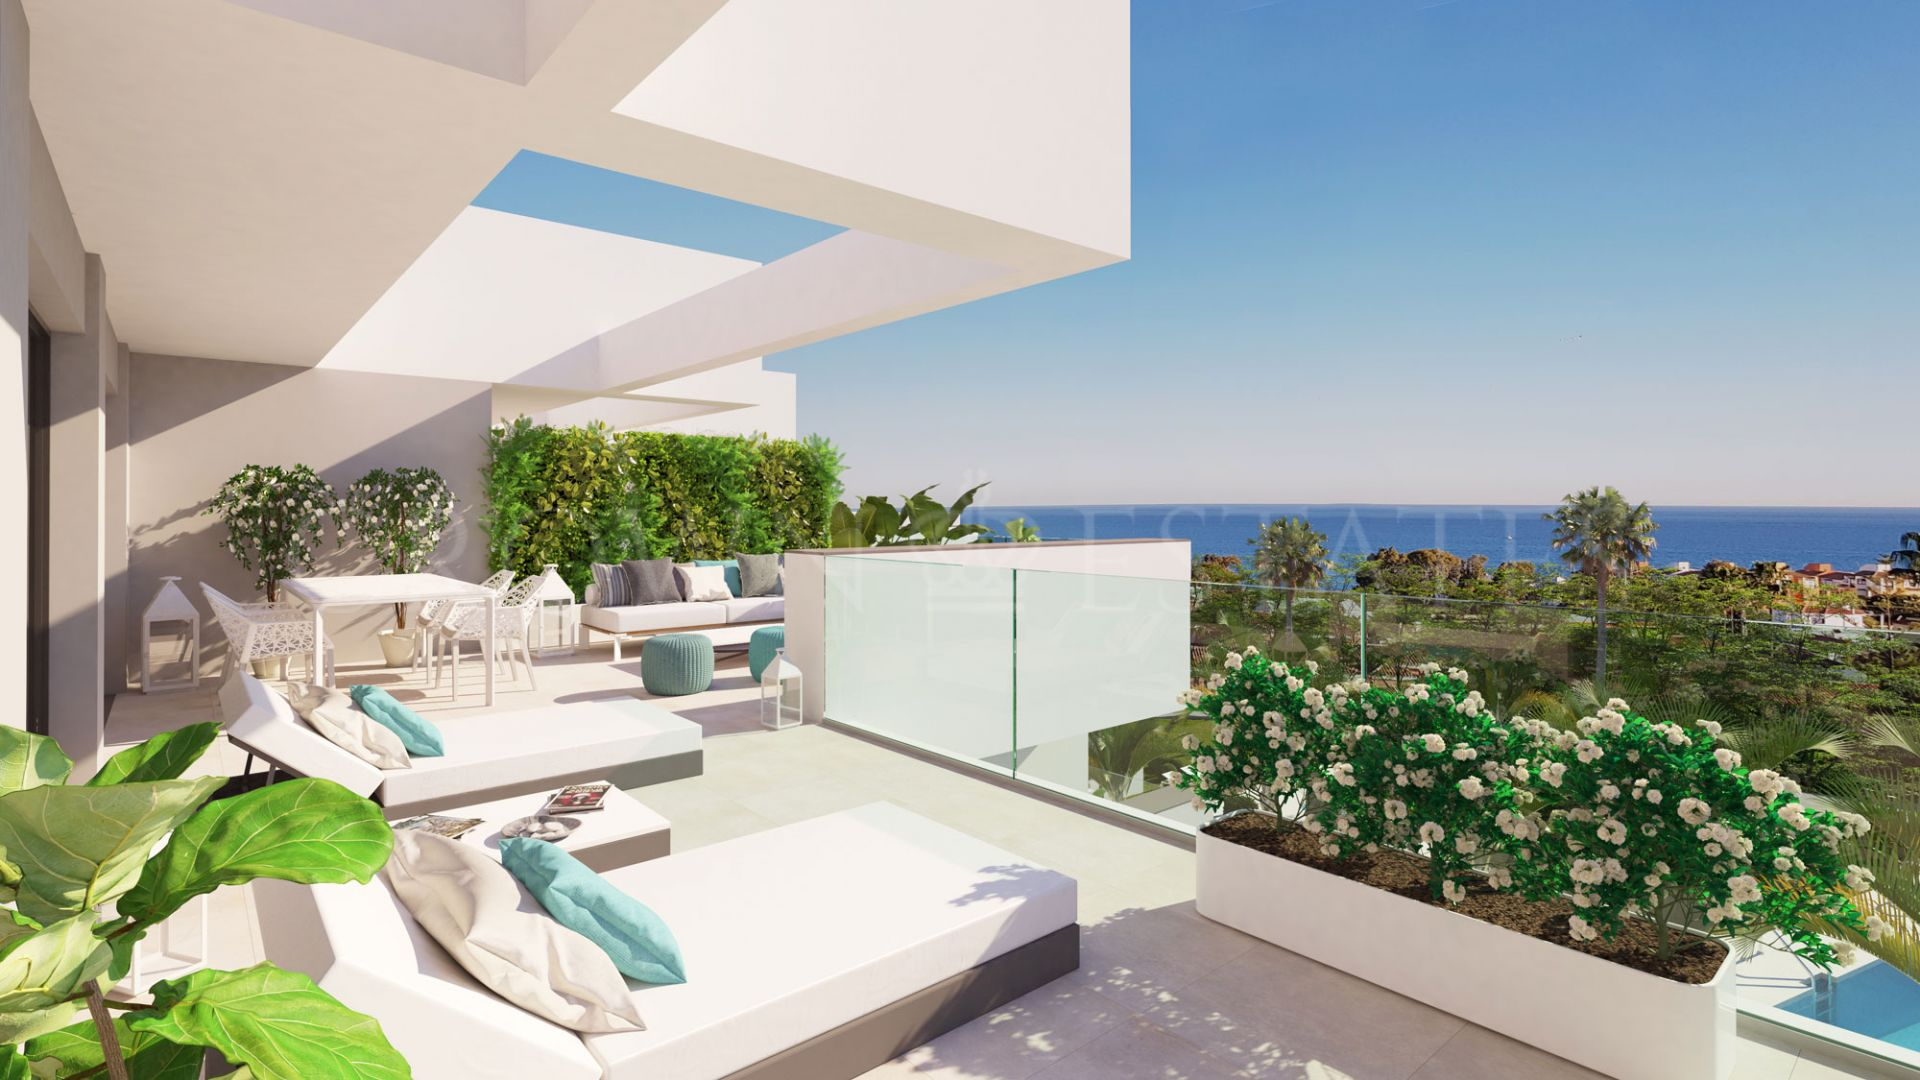 Pure South, contemporary apartments with sea views for a resort-style living in La Duquesa area